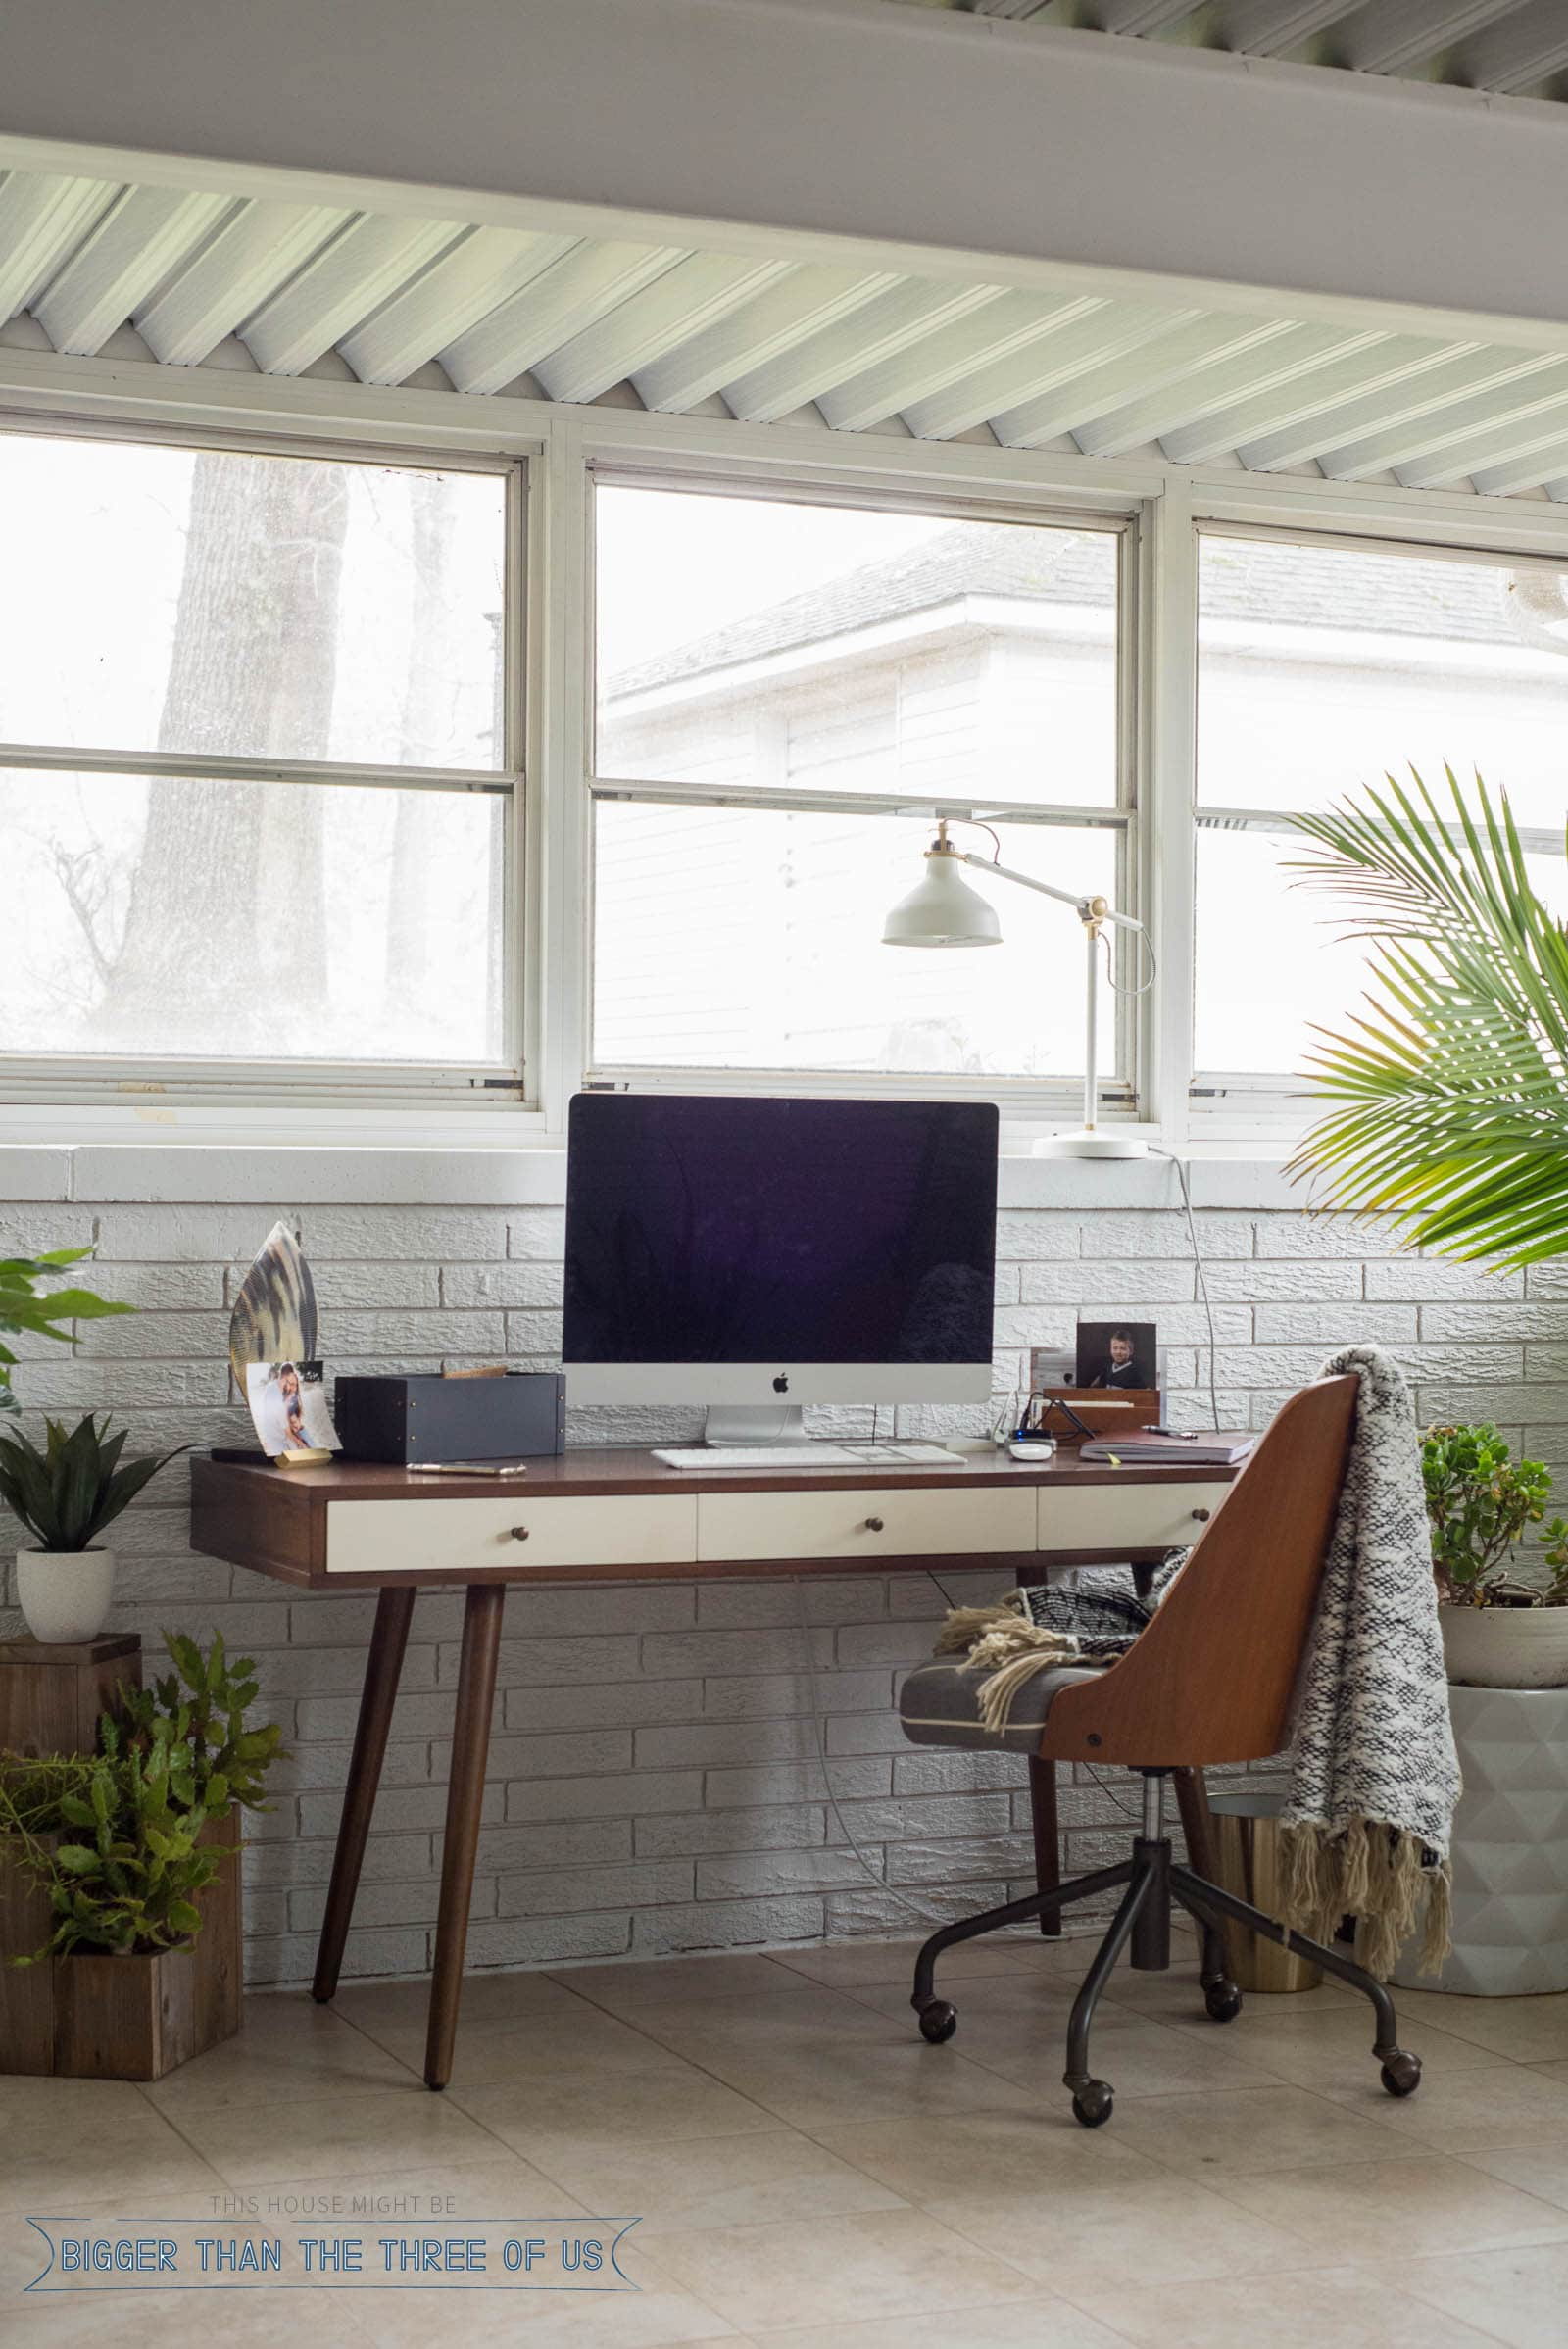 Mid Century Modern Walnut Desk In Sunroom With Plants